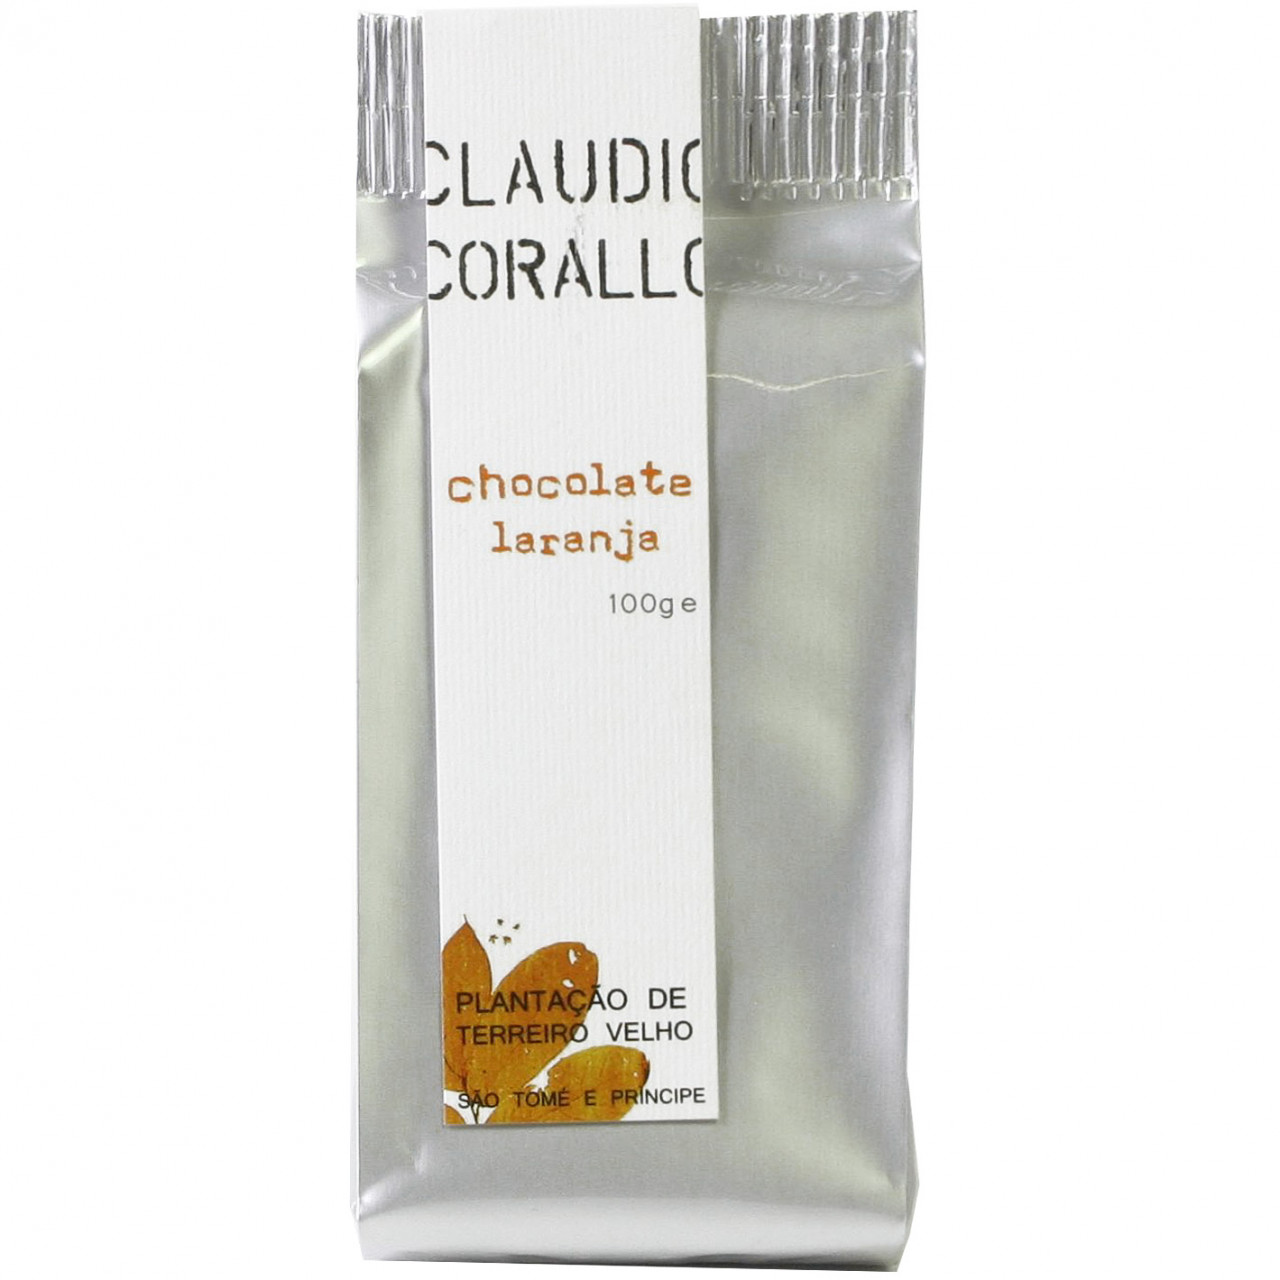 Dunkle Schokolade, Schokolade mit Orange, Schokolade von Sao Tomé, dark chocolate, chocolat noir, - Bar of Chocolate, Sao Tomé, Sao Tomé Chocolate, chocolate with orange - Chocolats-De-Luxe